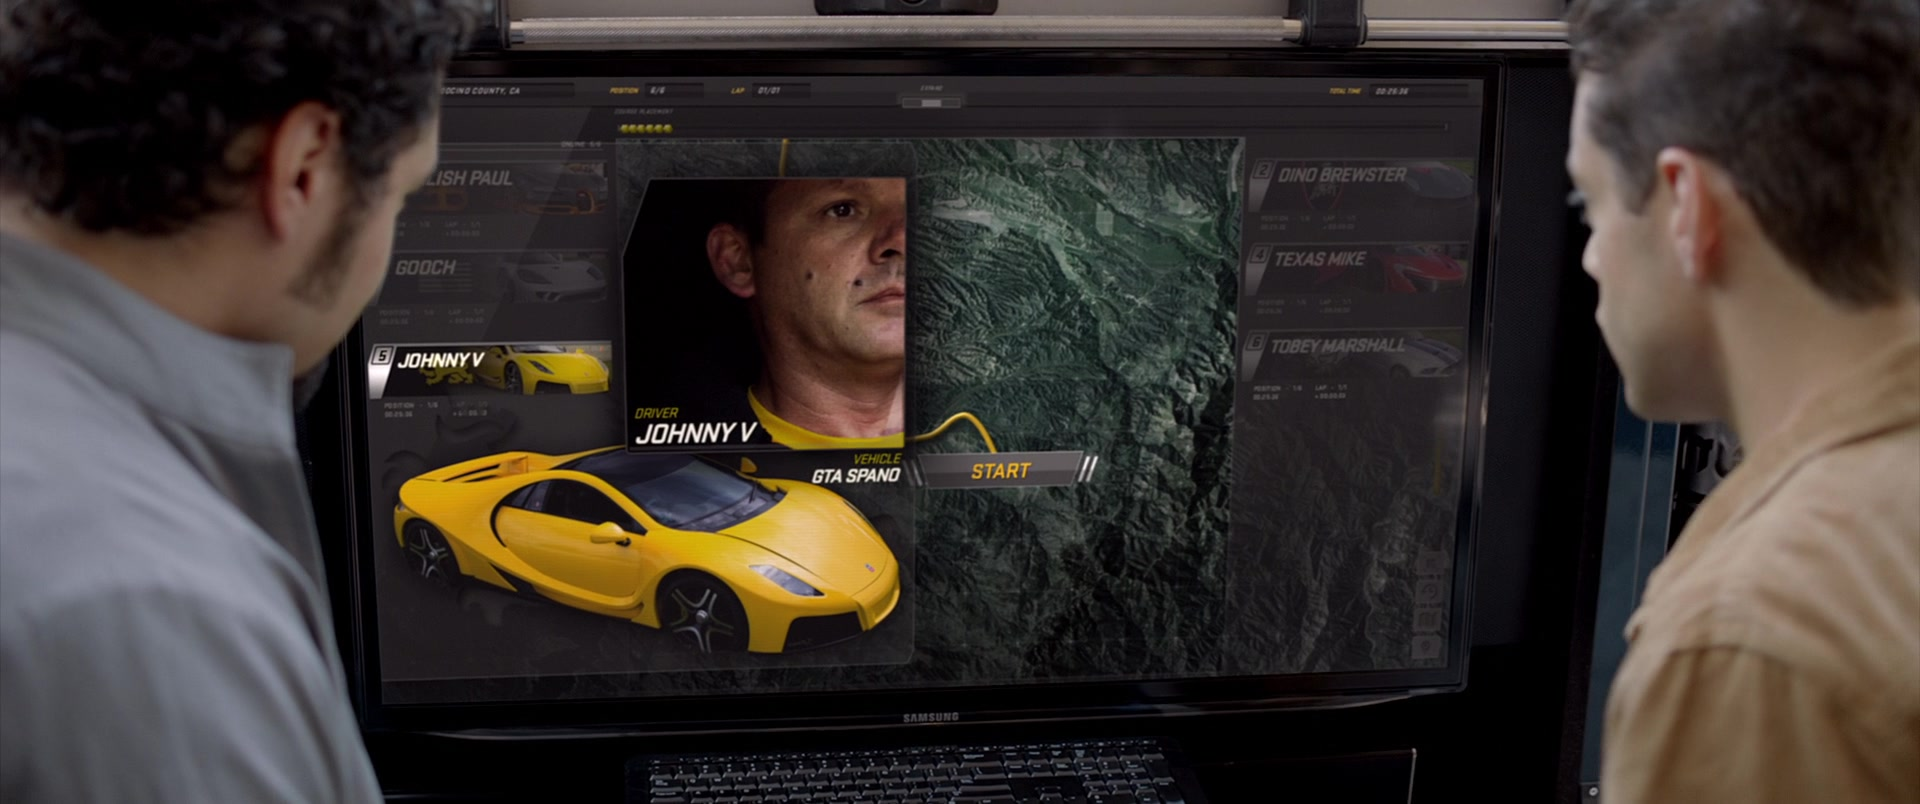 Samsung Monitor in Need for Speed (2014) Movie